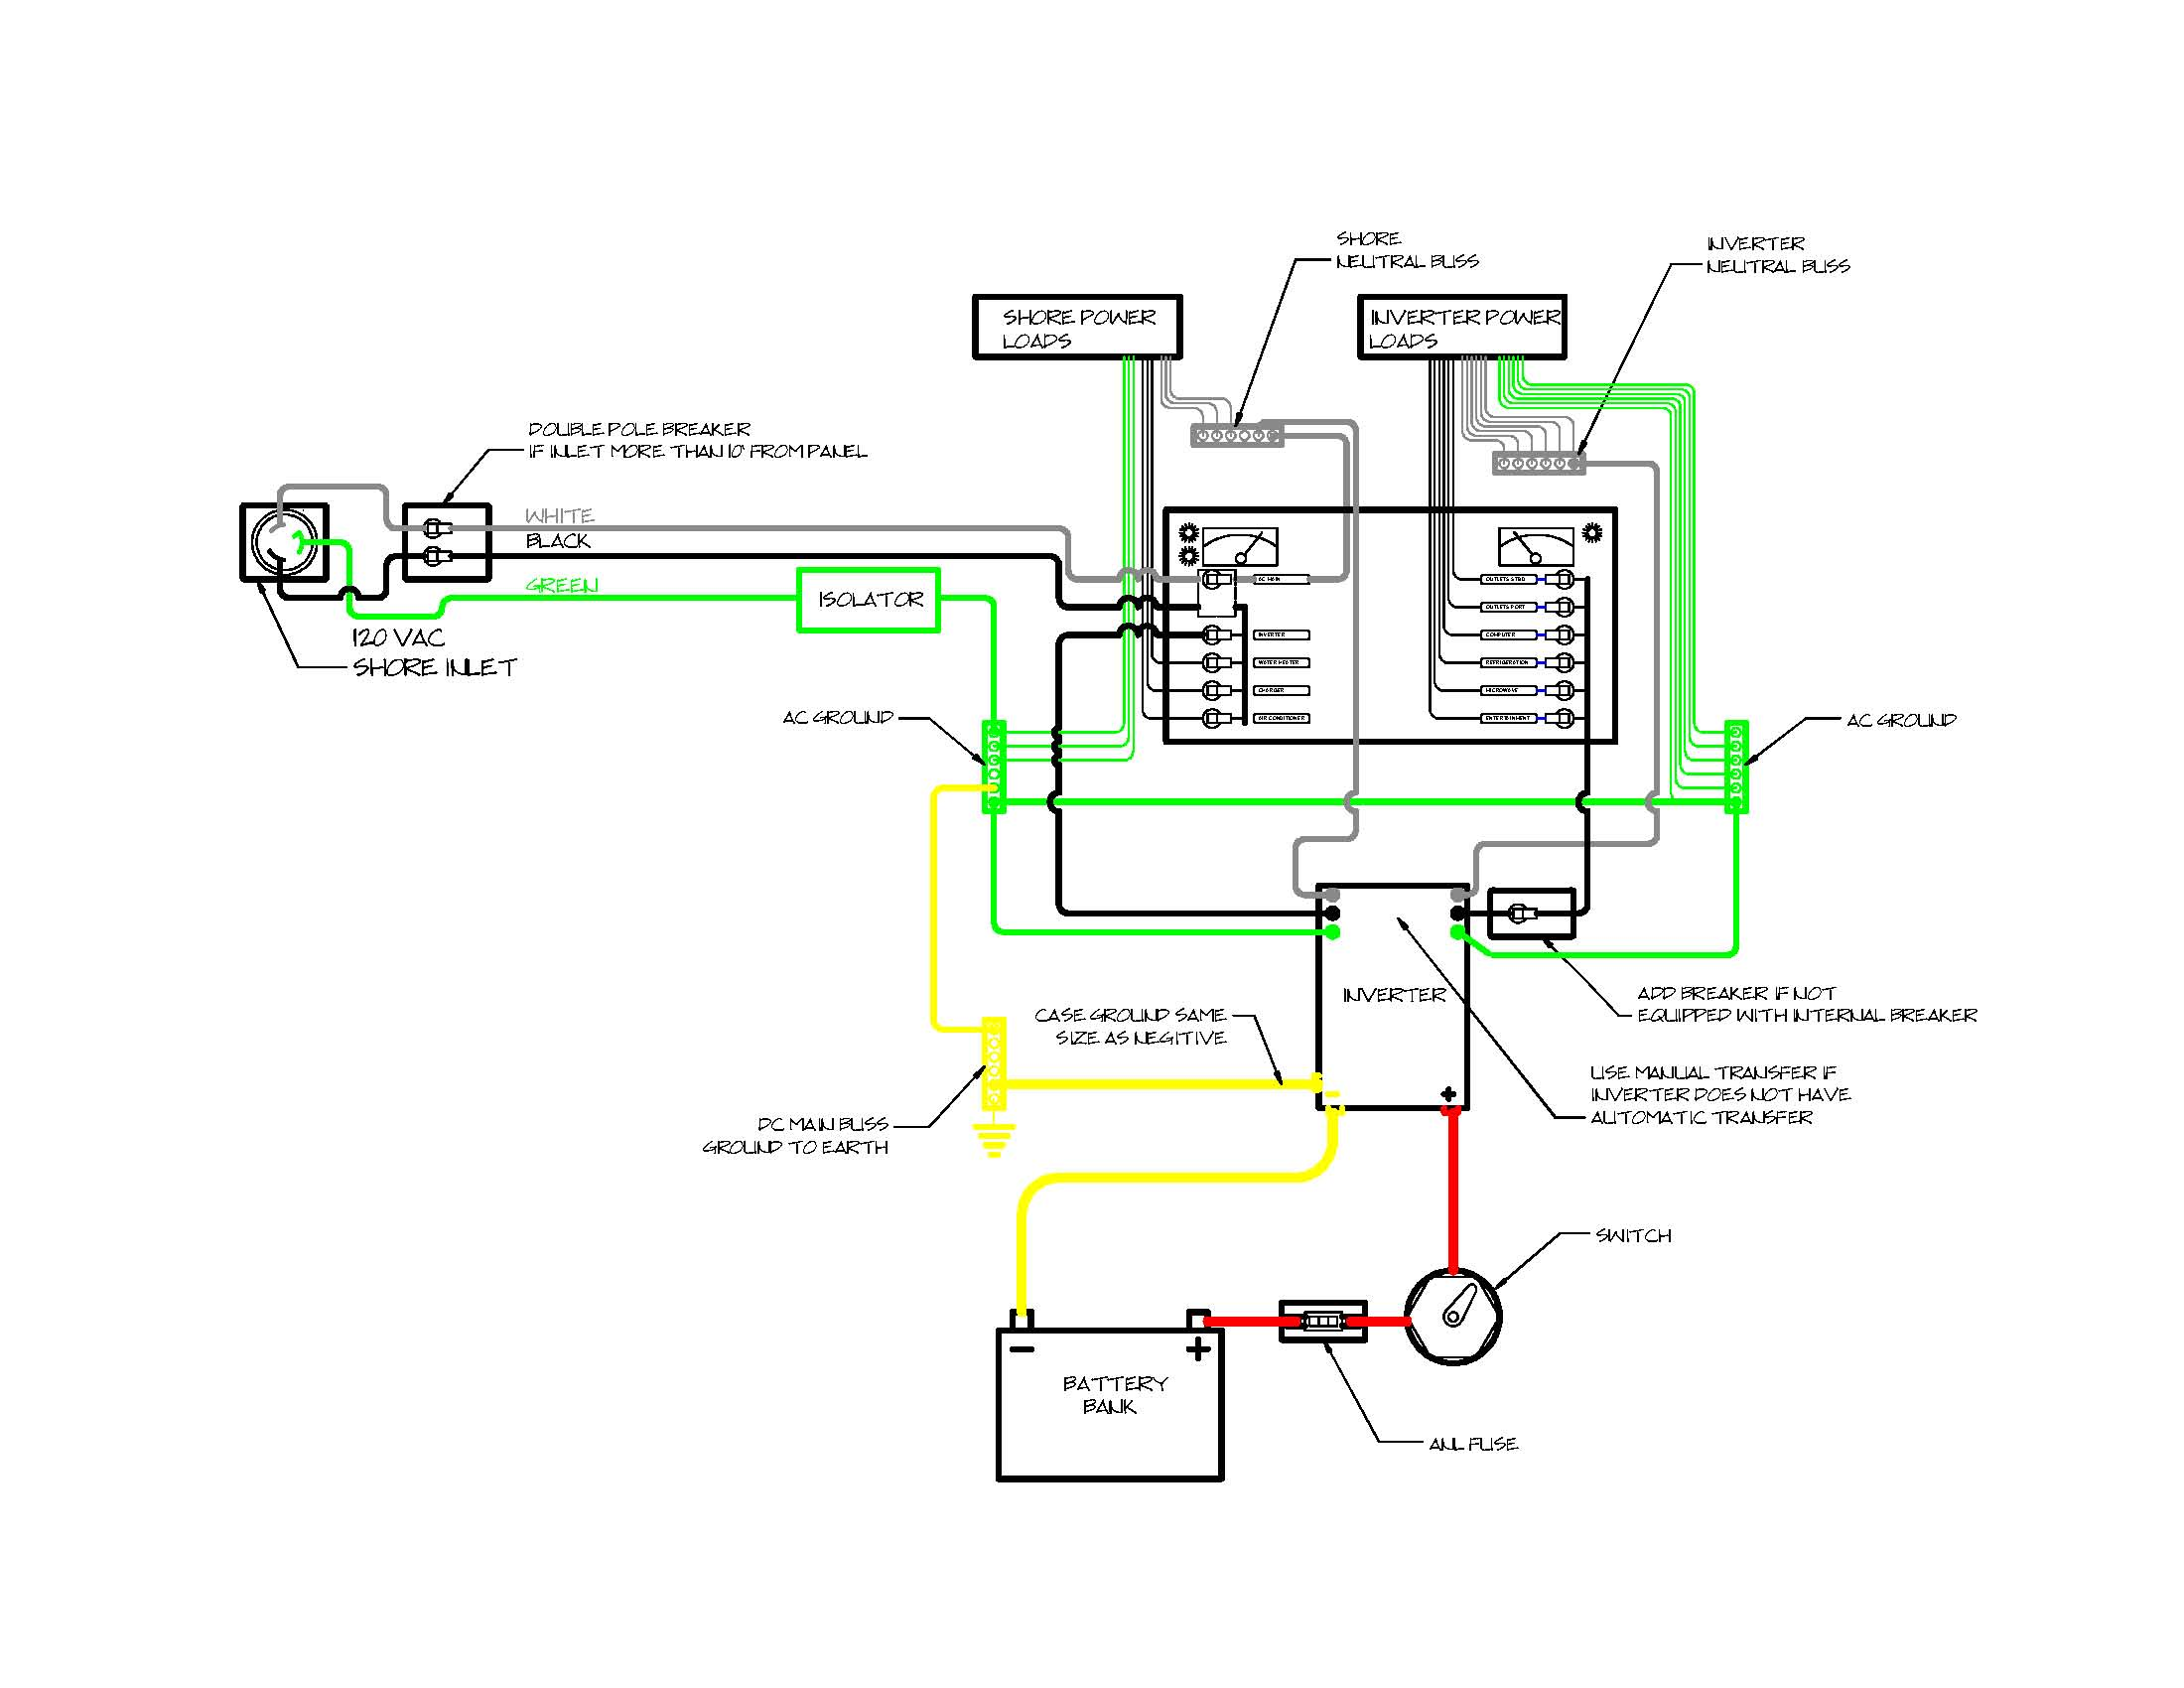 inverter dc wiring schematic diagram Shore Power Inverter Transfer Switch understanding inverter installations project boat zen shore power wiring inverter wiring simplejpg